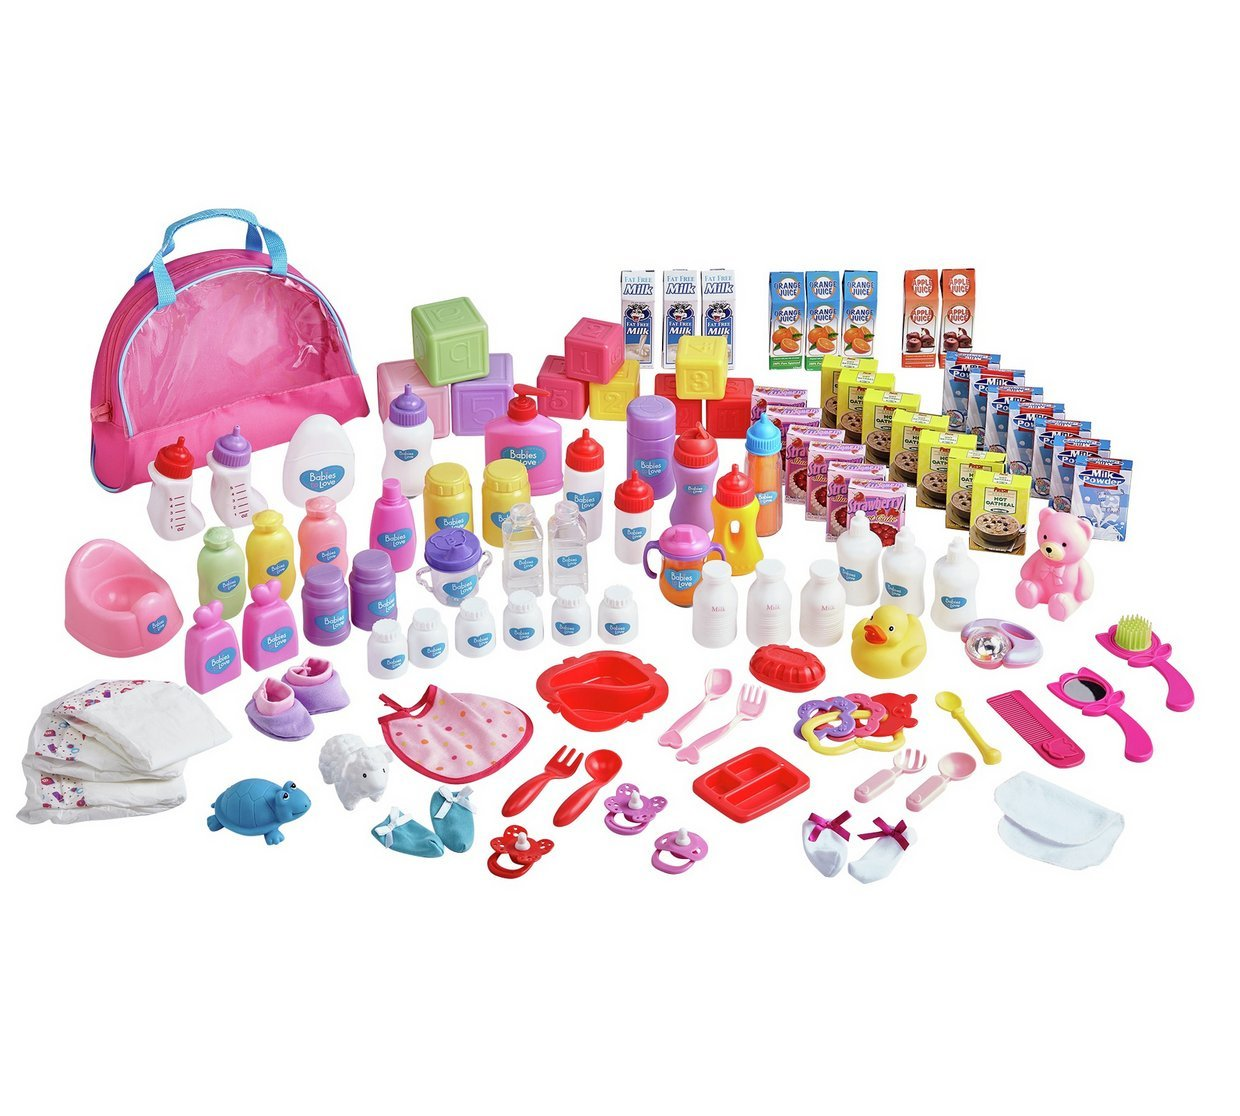 Dolls house at argos co uk your online shop for dolls houses dolls - Doll Cars And Vehicles Doll Accessories